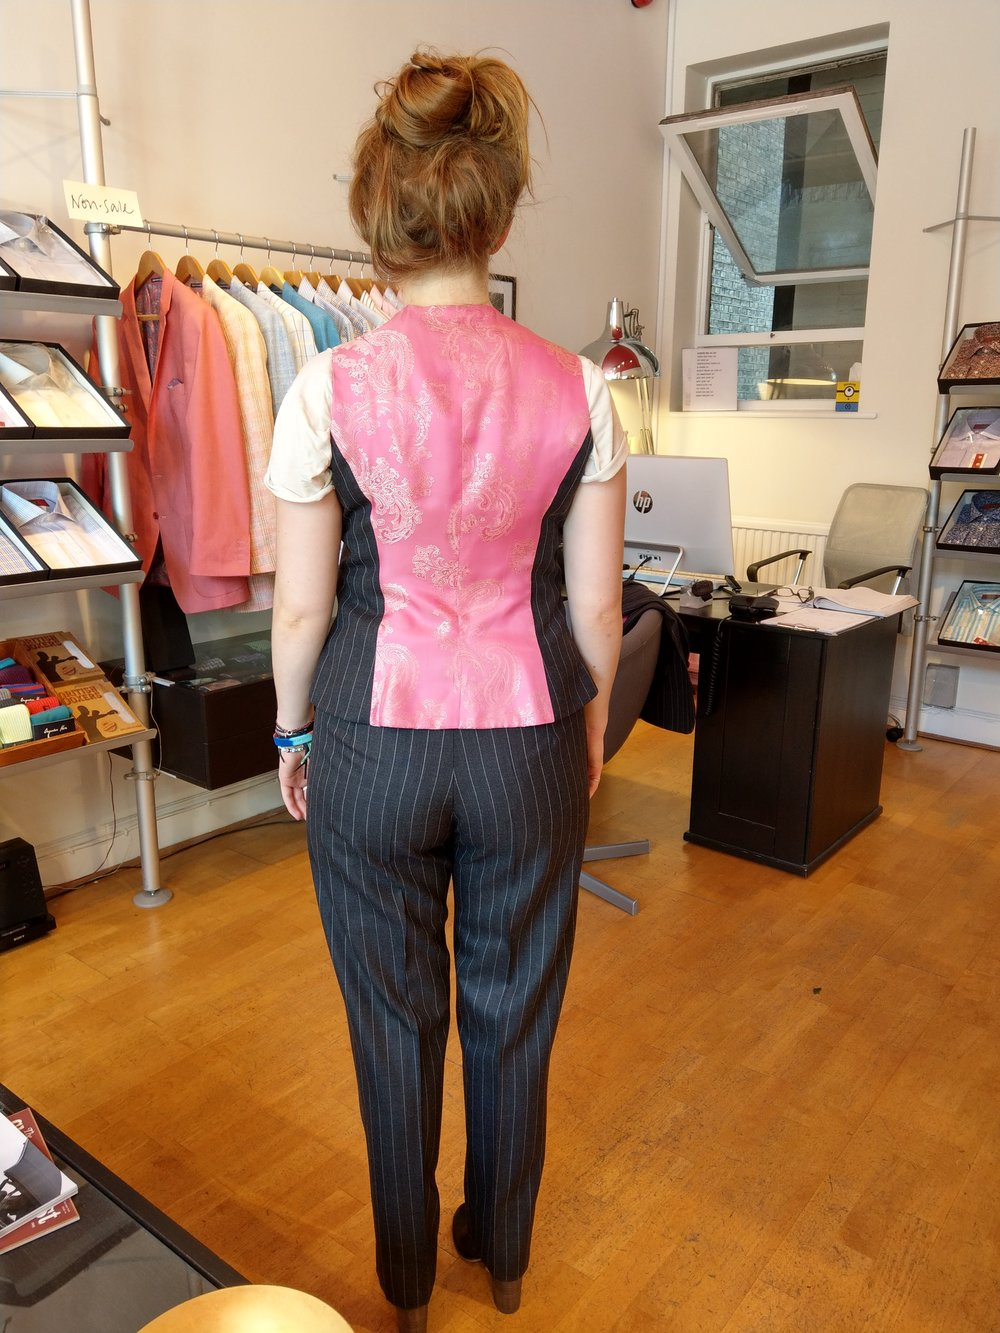 hall-tailors-bespoke-suit-ladies-vintage-retro-style-pin-stripe-dugdale-uk-british-made.jpg